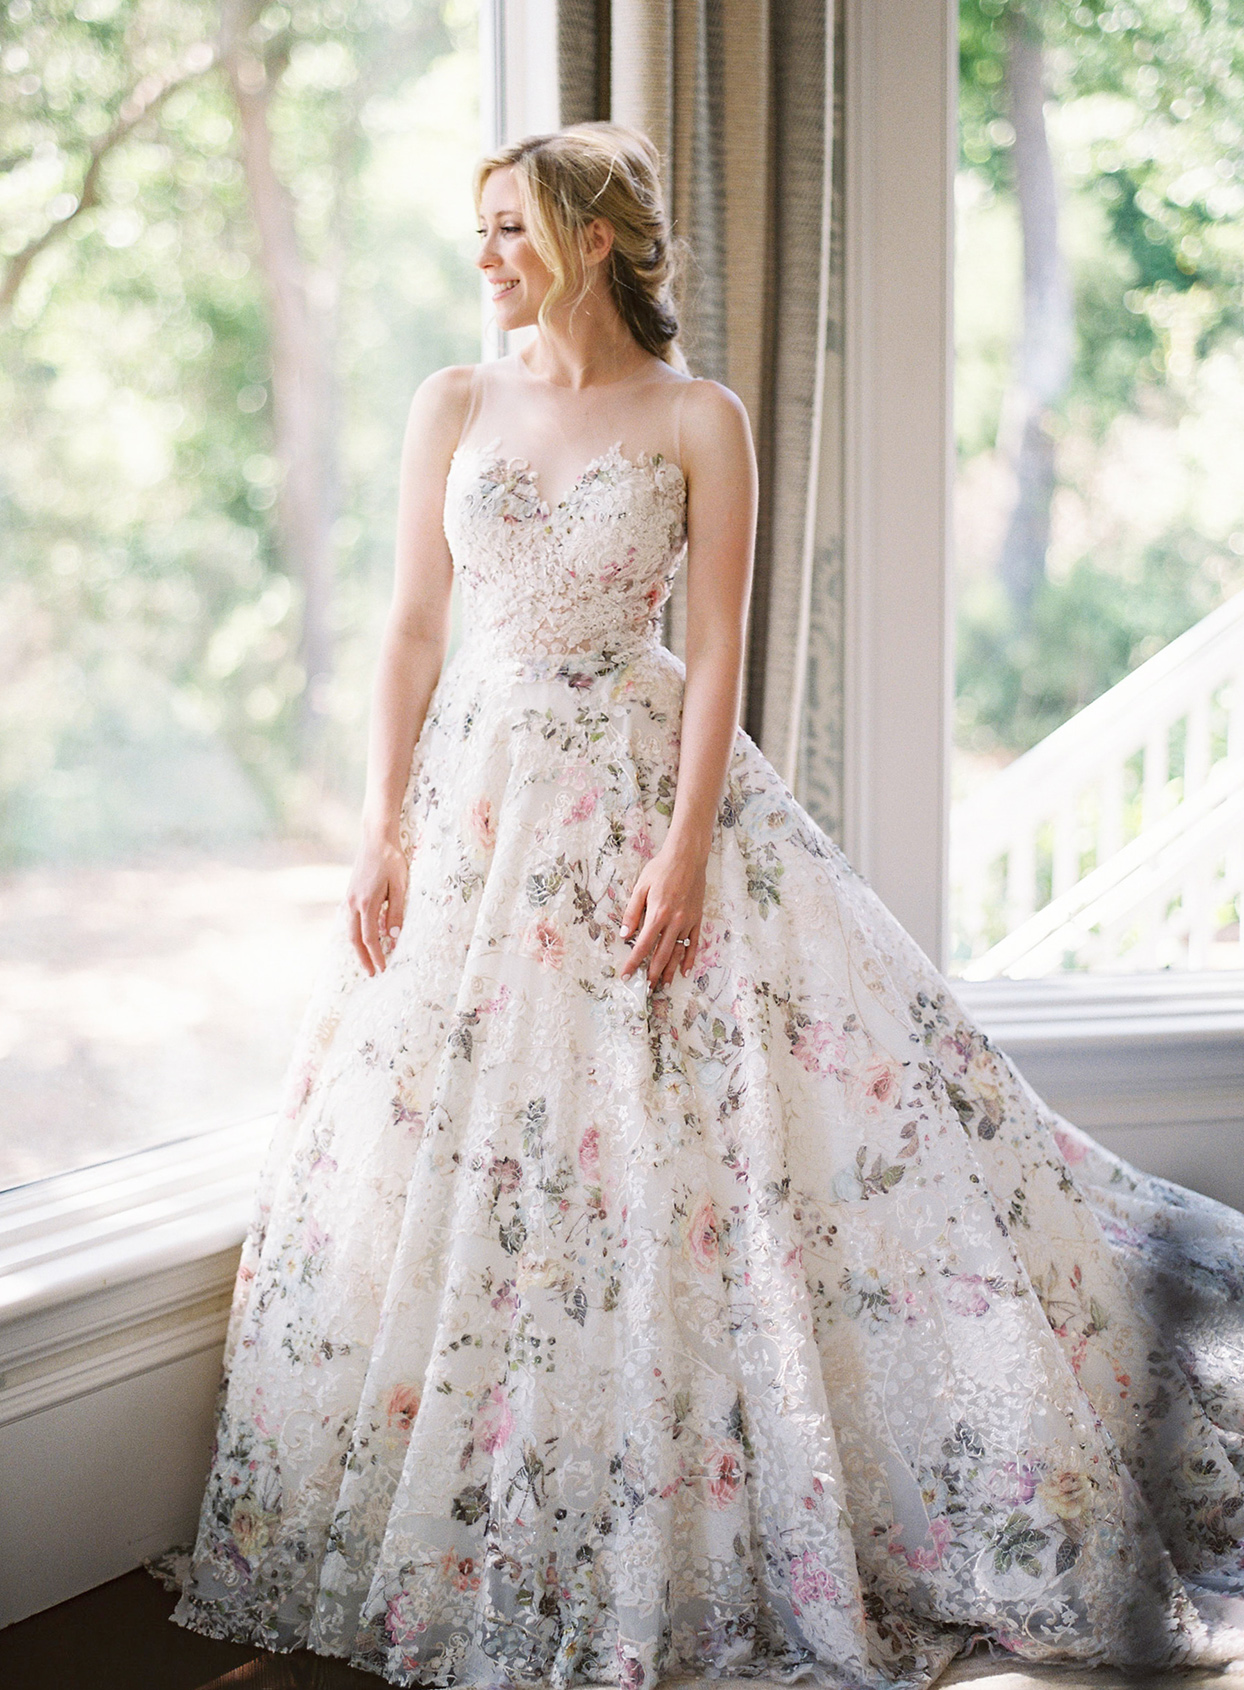 chelsea john wedding dress floral overlay